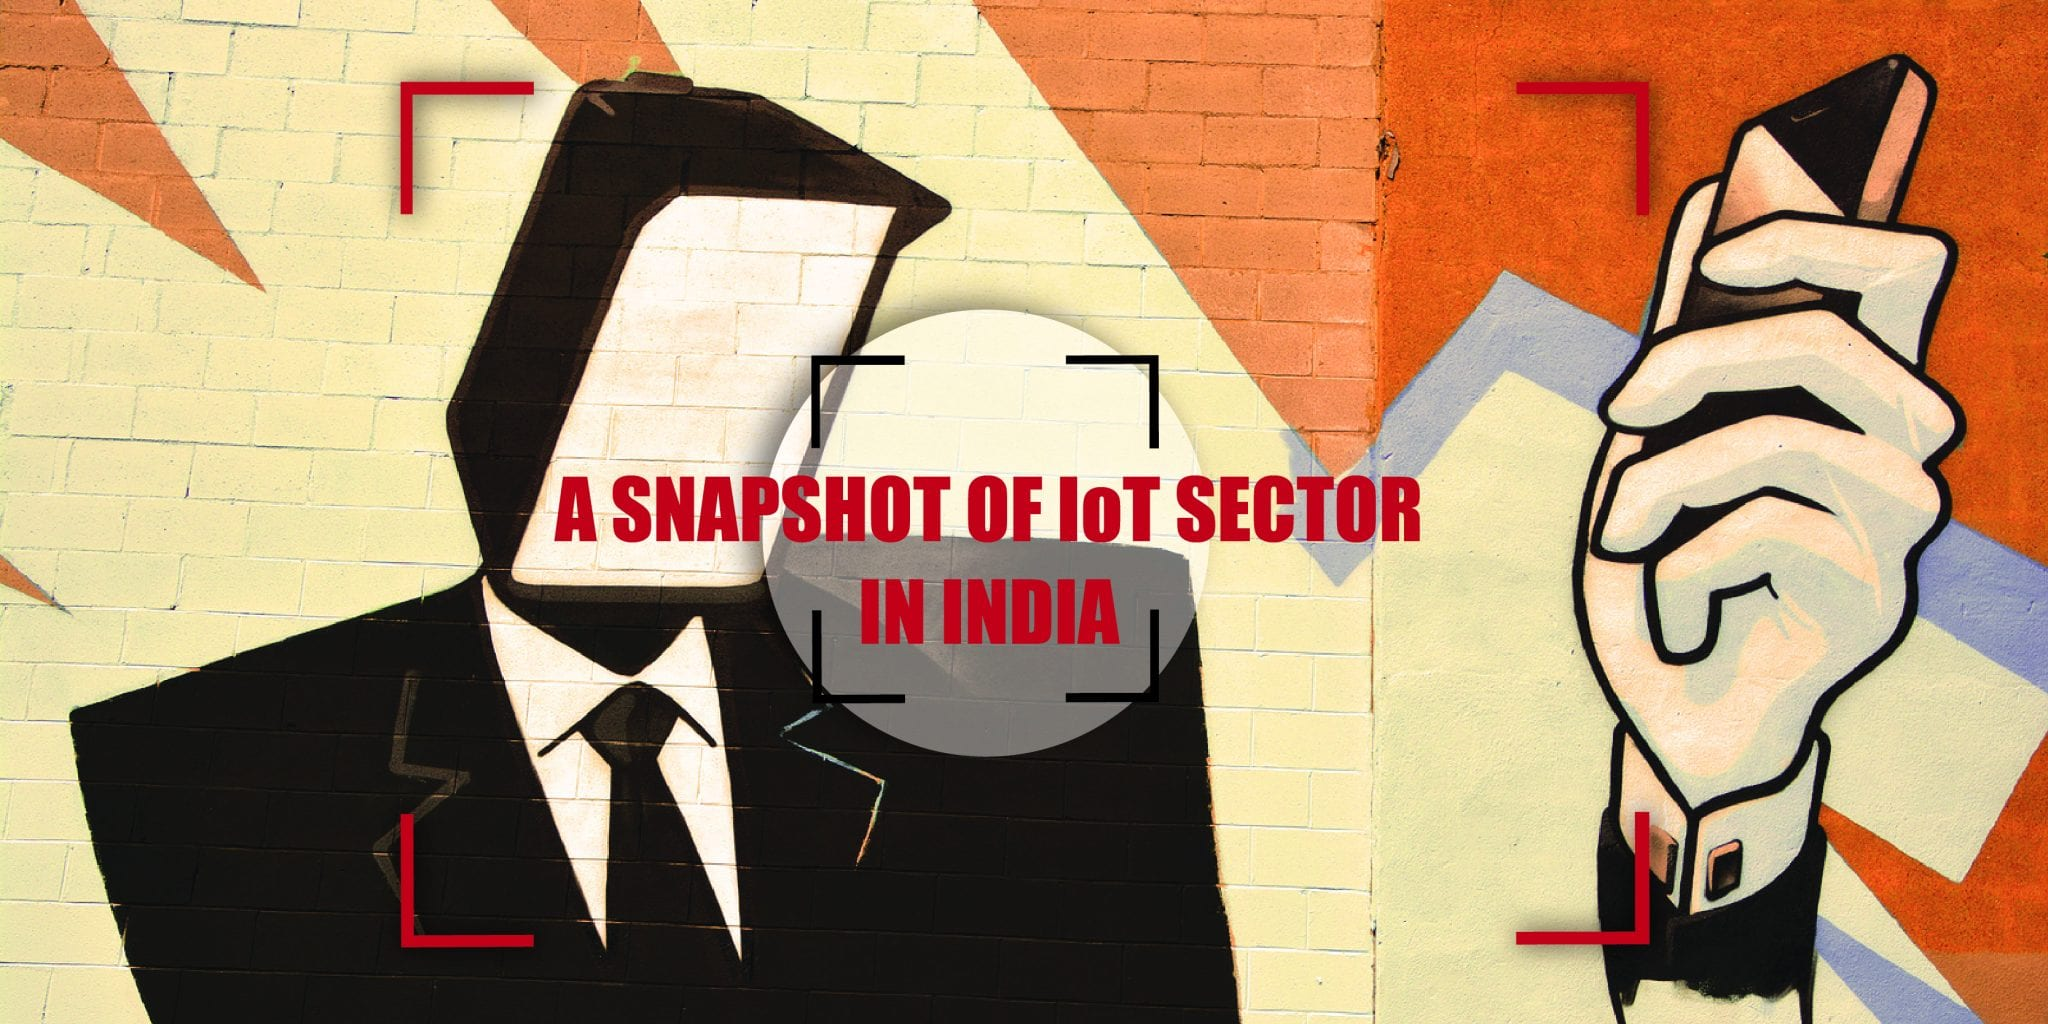 snapshot of IoT sector in india